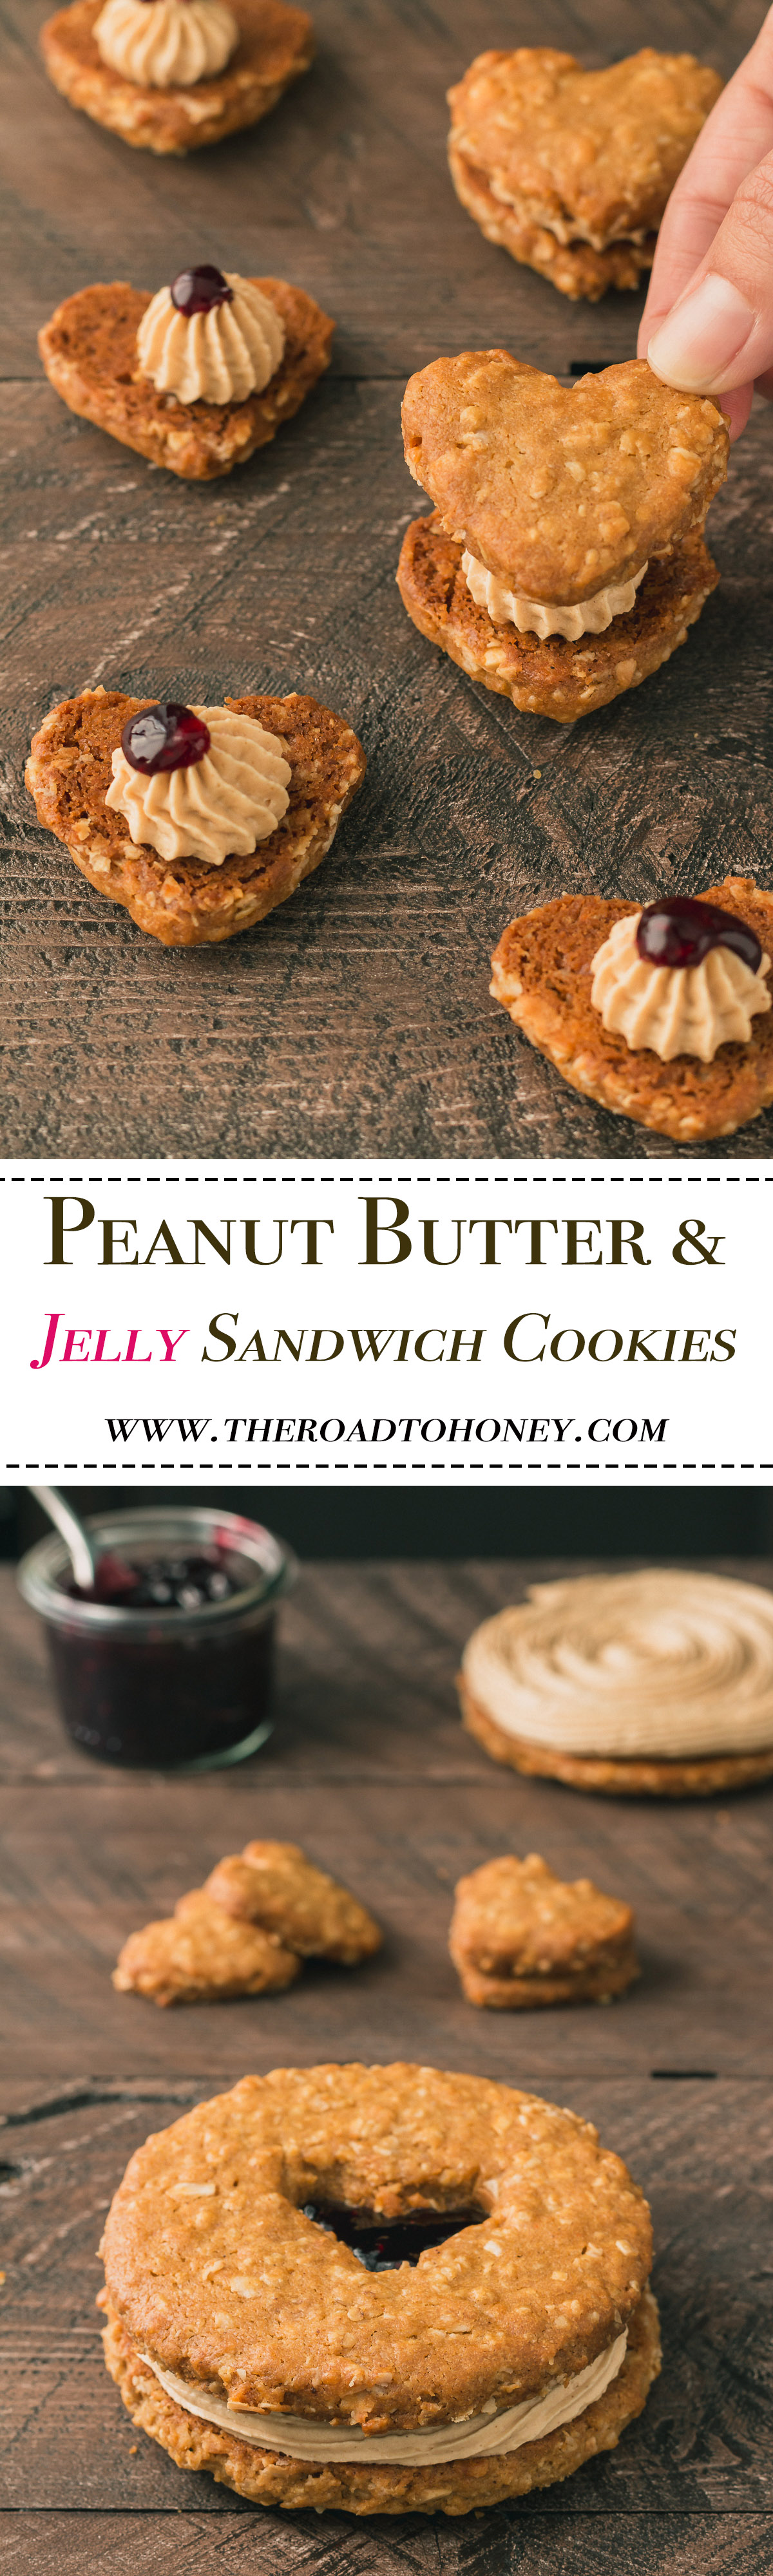 Peanut Butter & Jelly Sandwich Cookies - a rich & addicting peanut butter flavored Italian buttercream is sandwiched between two irresistible peanut butter cookies & topped with a dollop of strawberry jam. Perfect for Valentines day, school lunches or any time you need a peanut butter fix. Click for RECIPE.